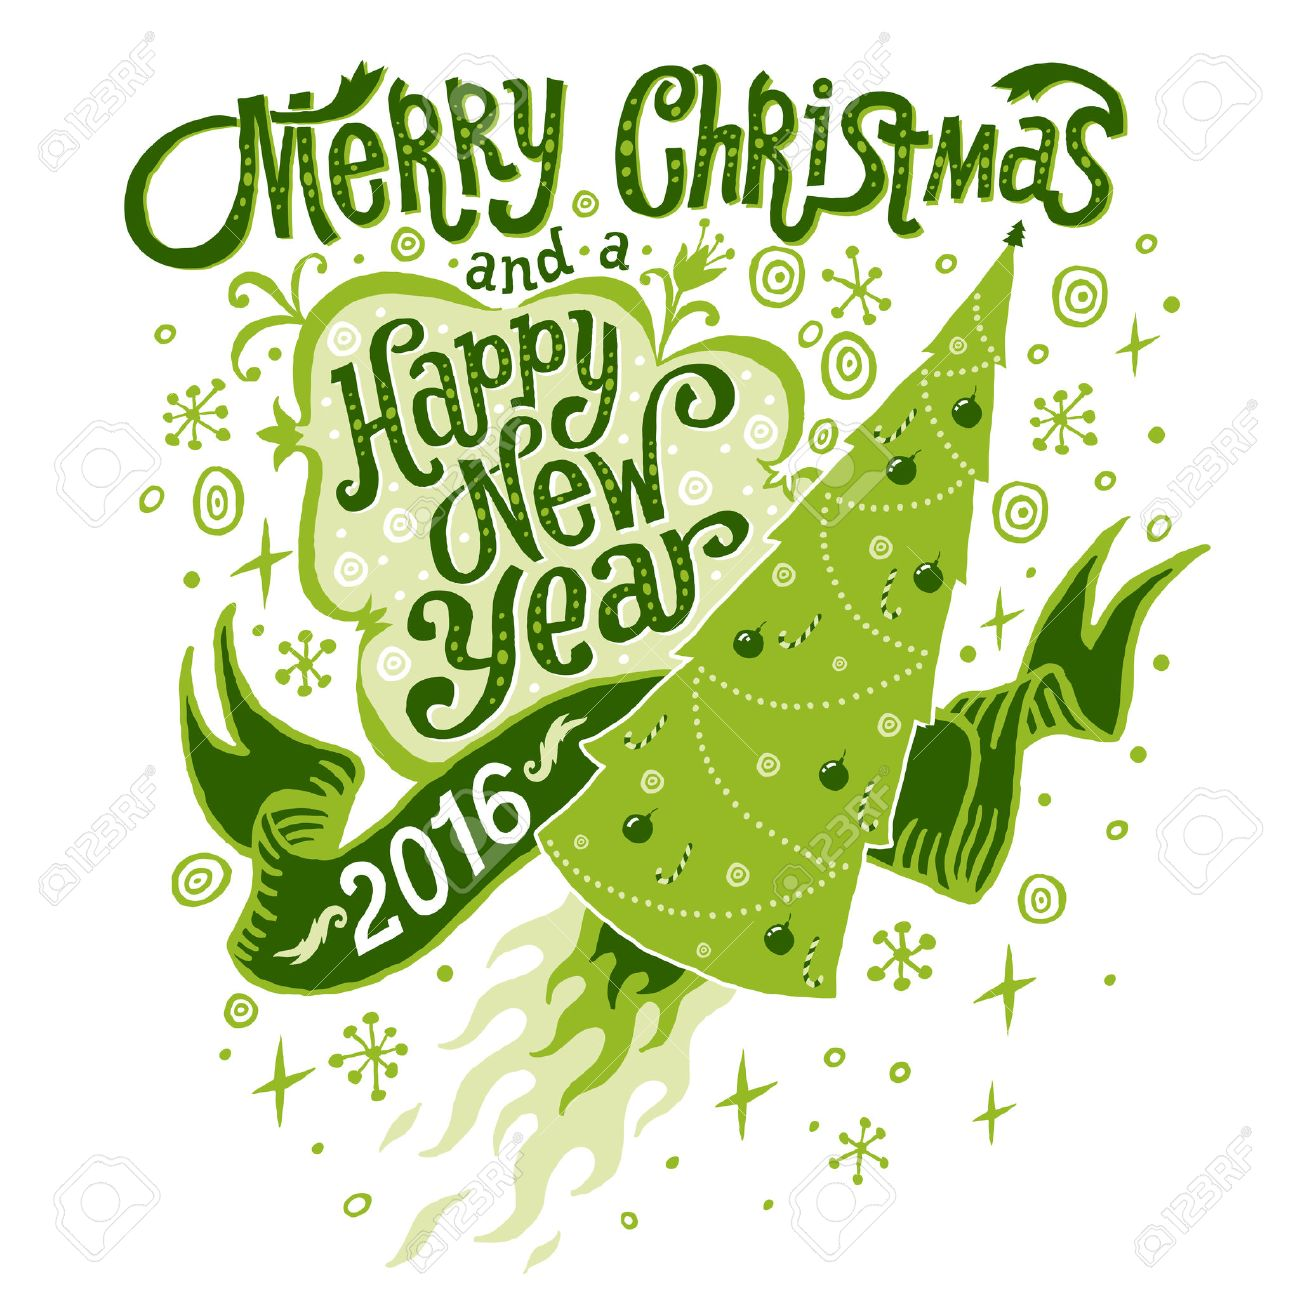 Merry Christmas and Happy New Year 2016 Greeting card, isolated...